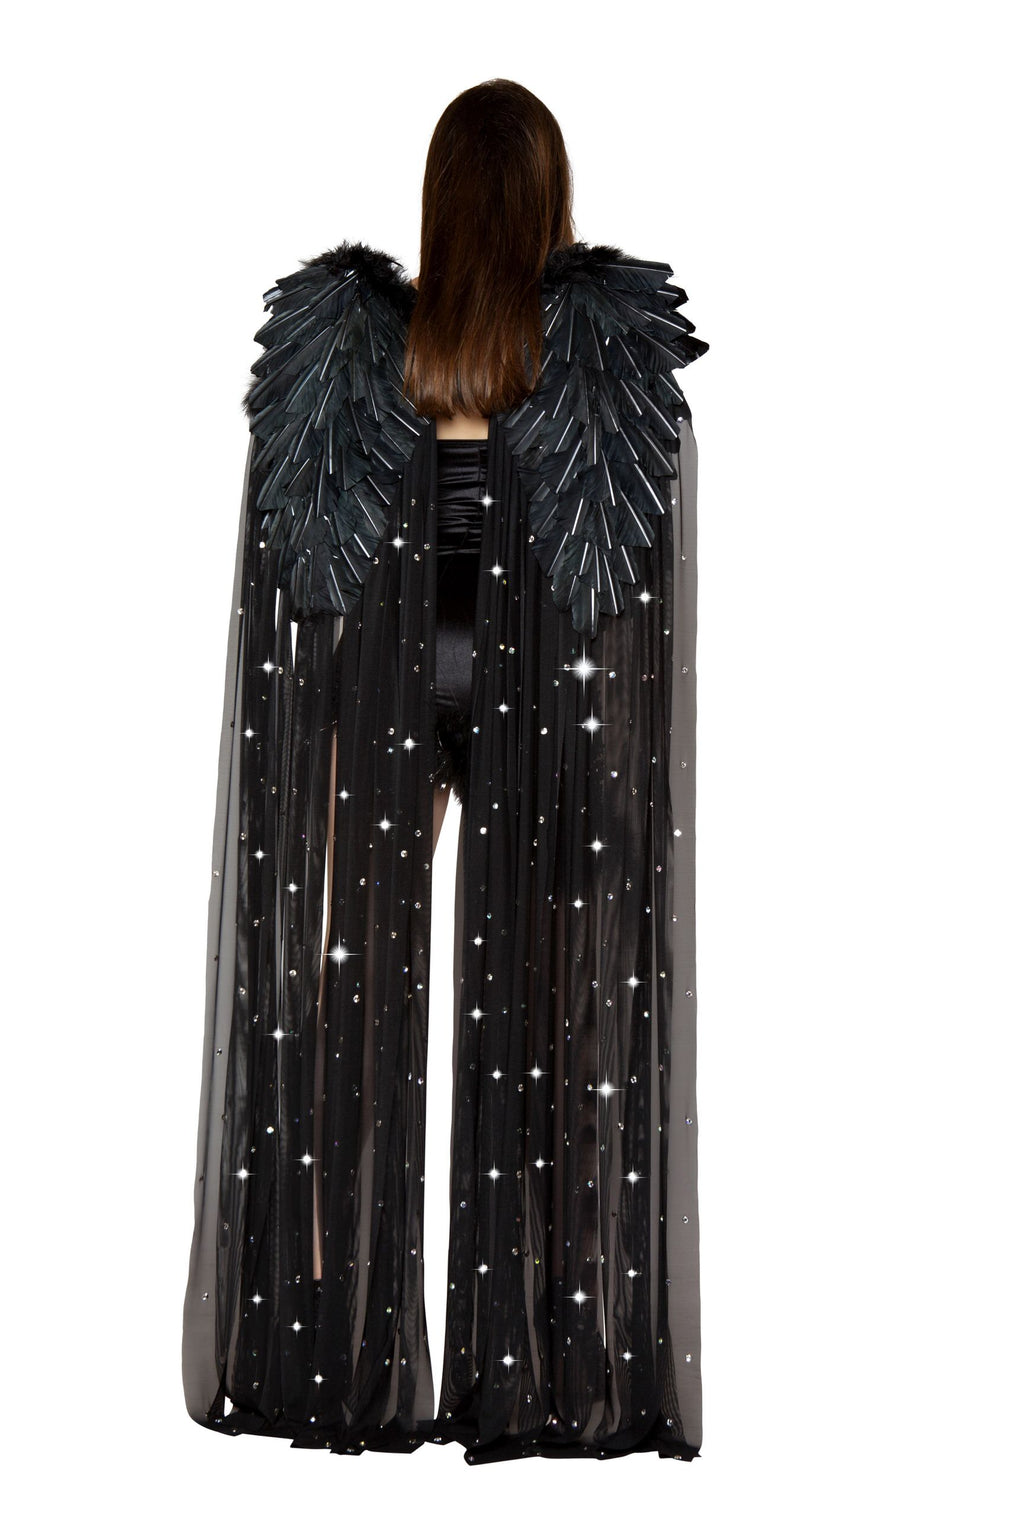 Black-Fallen-Angel-Double-Layer-Rhinestone-Feather-Wings-Costume-Accessory